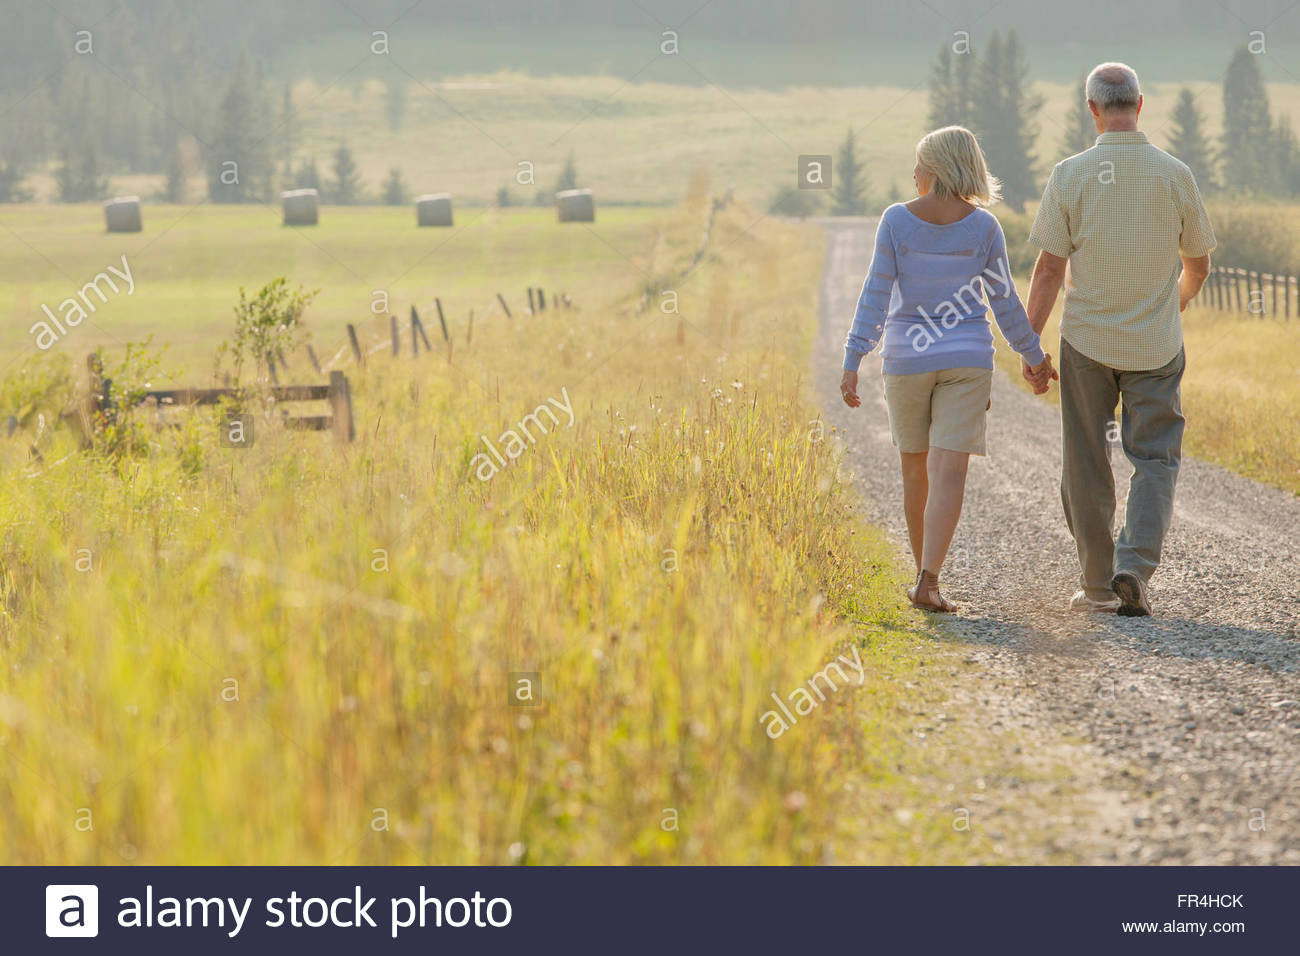 view from behind of middle-aged couple walking down country road - Stock Image